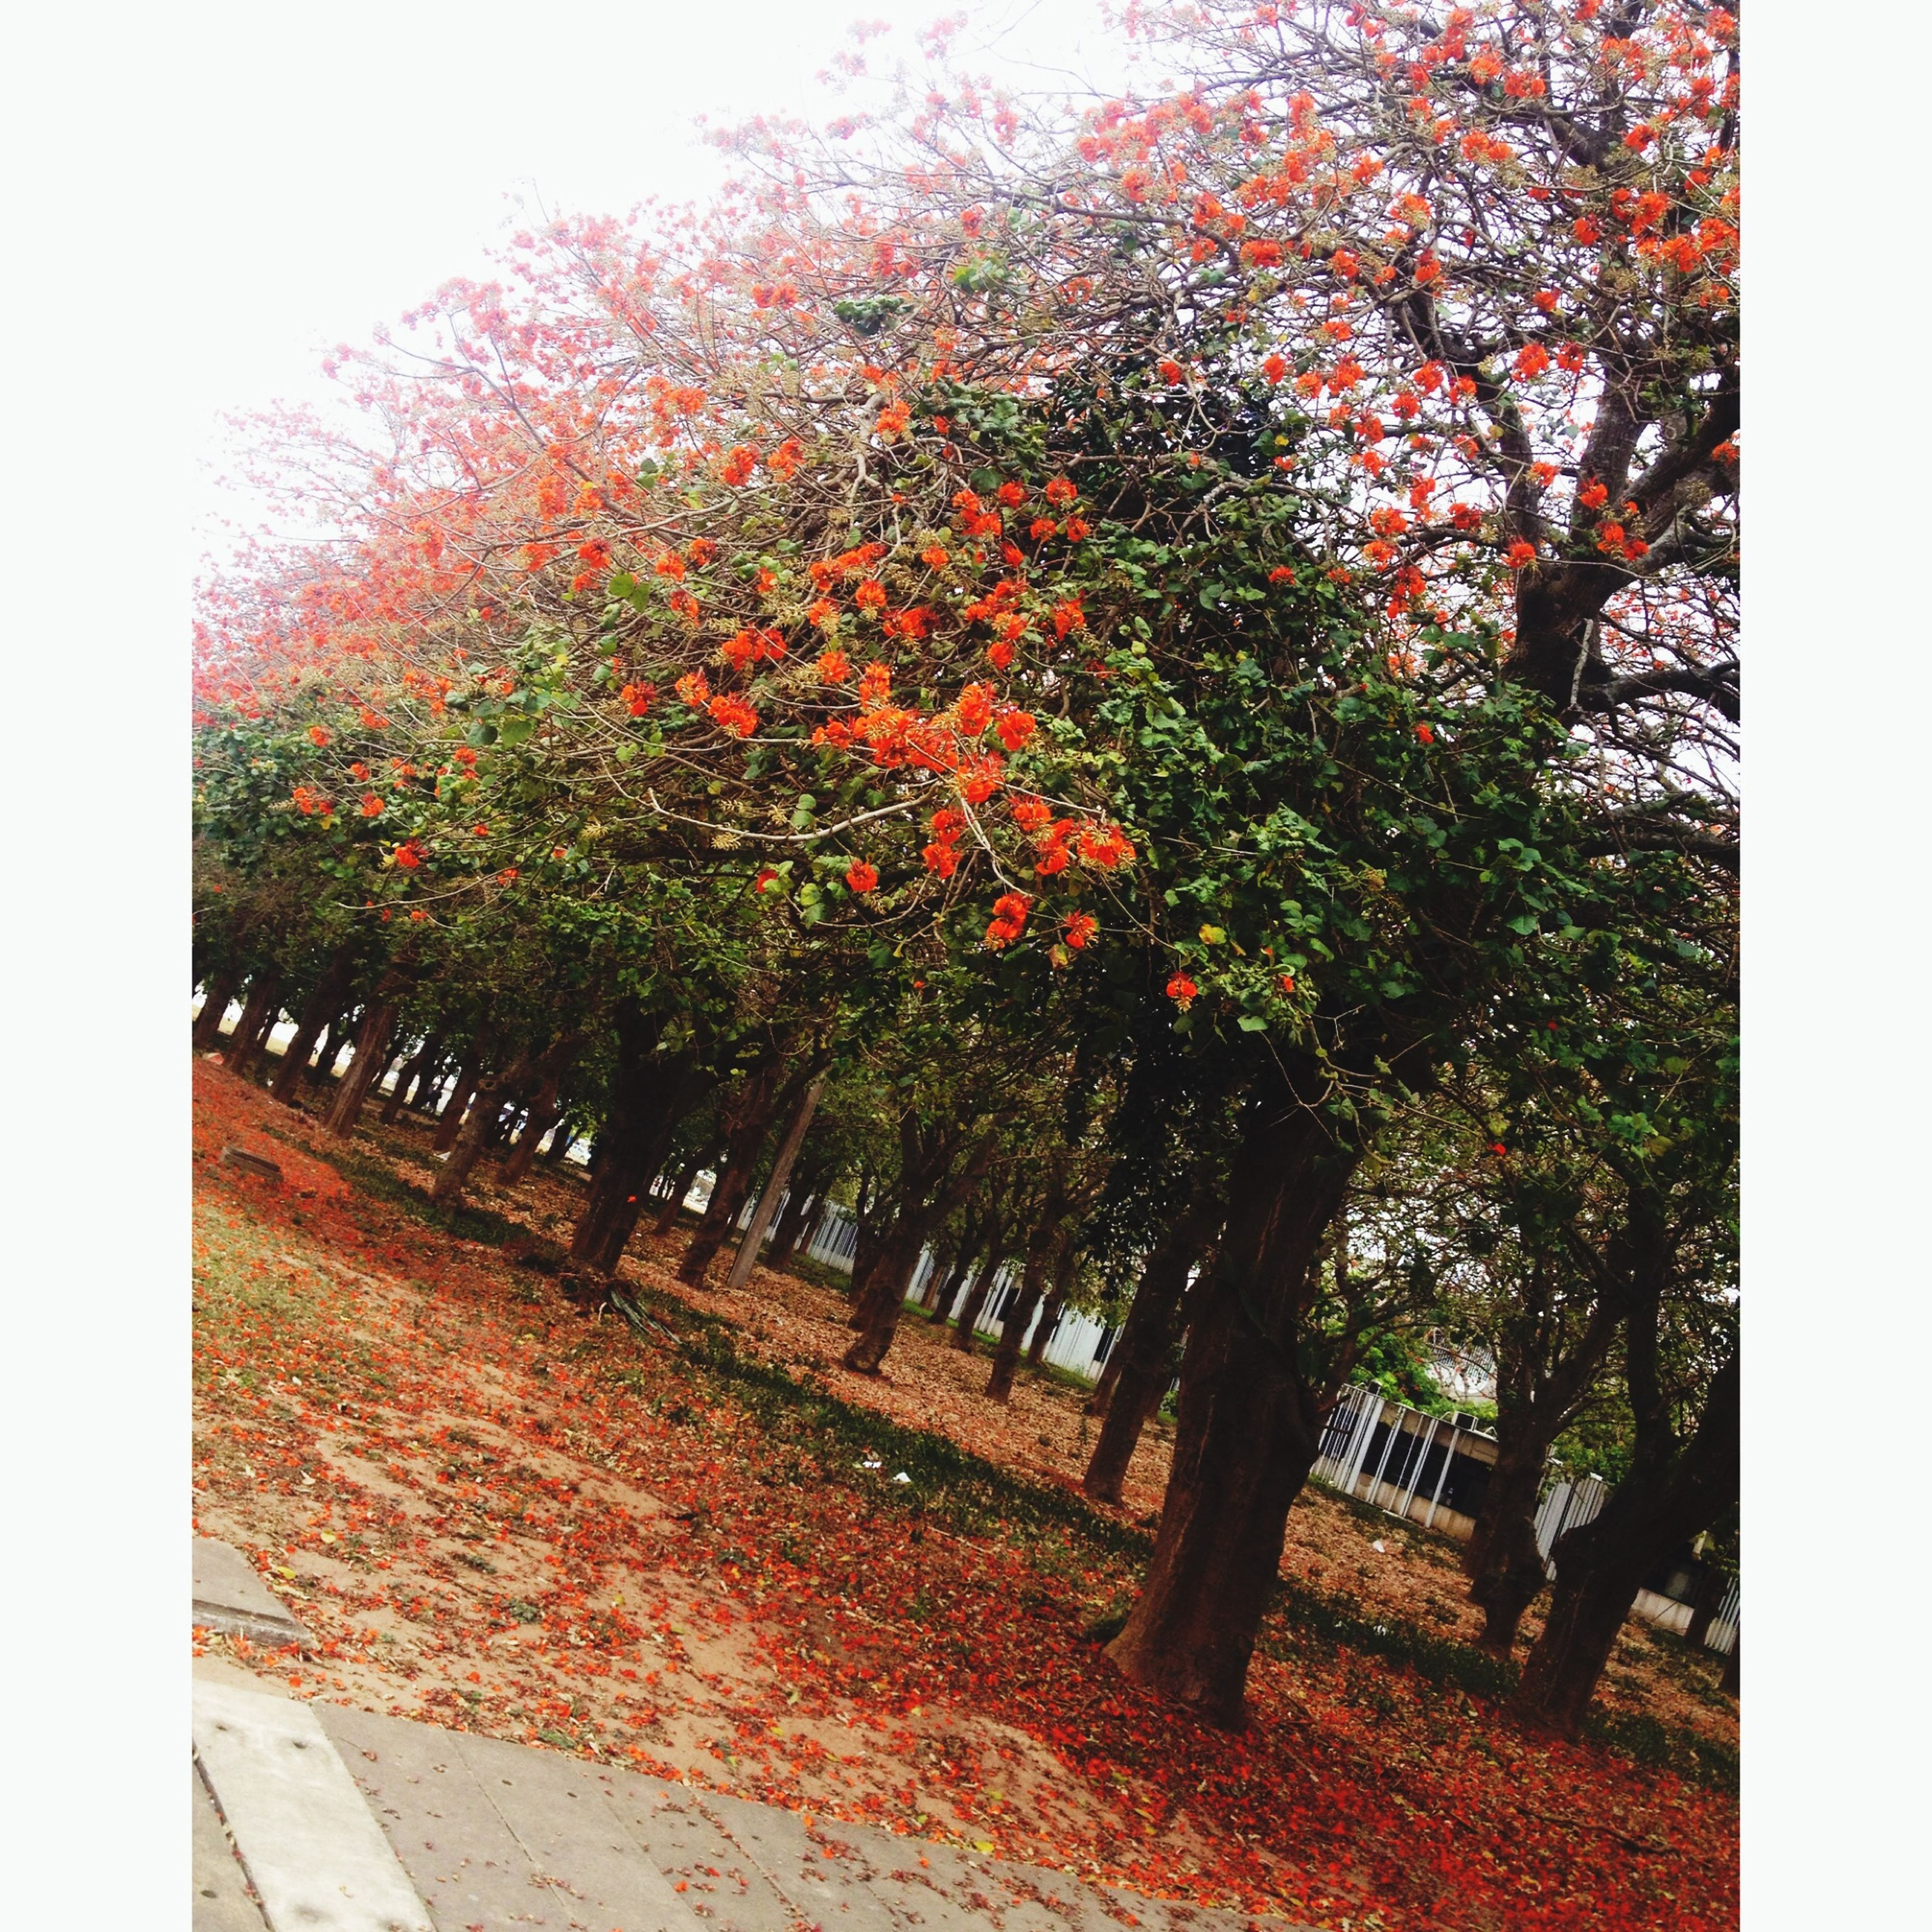 tree, growth, transfer print, autumn, season, beauty in nature, auto post production filter, nature, change, tranquility, flower, leaf, plant, branch, day, park - man made space, outdoors, tranquil scene, clear sky, no people